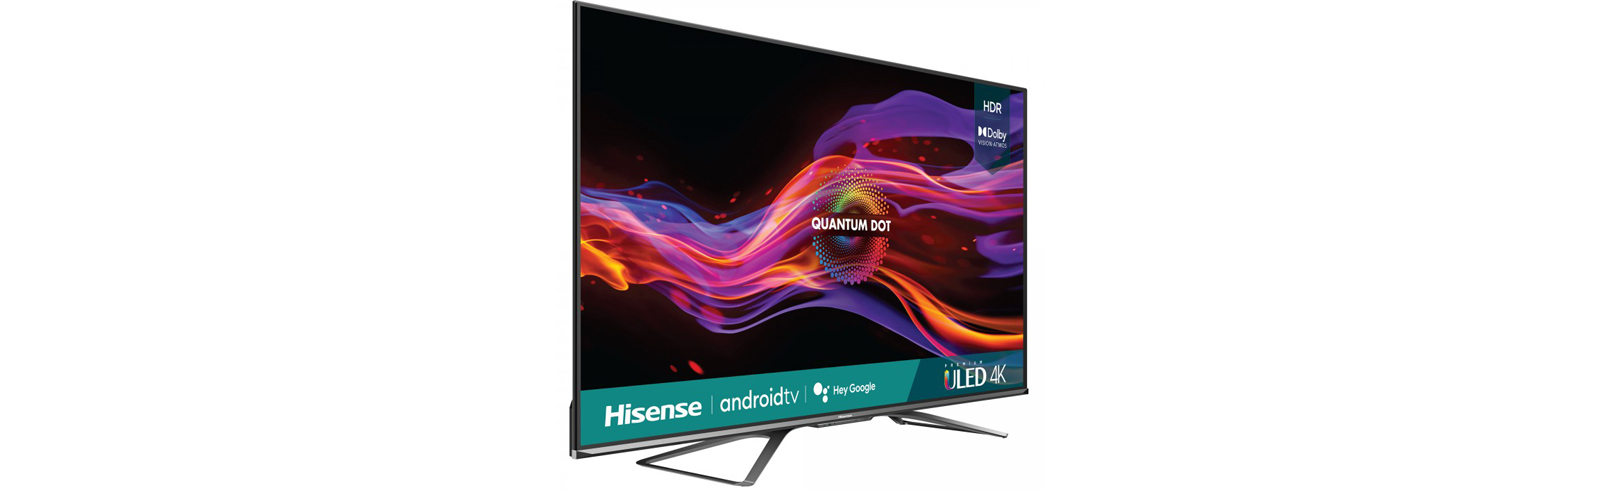 2021 Hisense U8G / U88G 4K ULED TVs for the USA - specifications and features